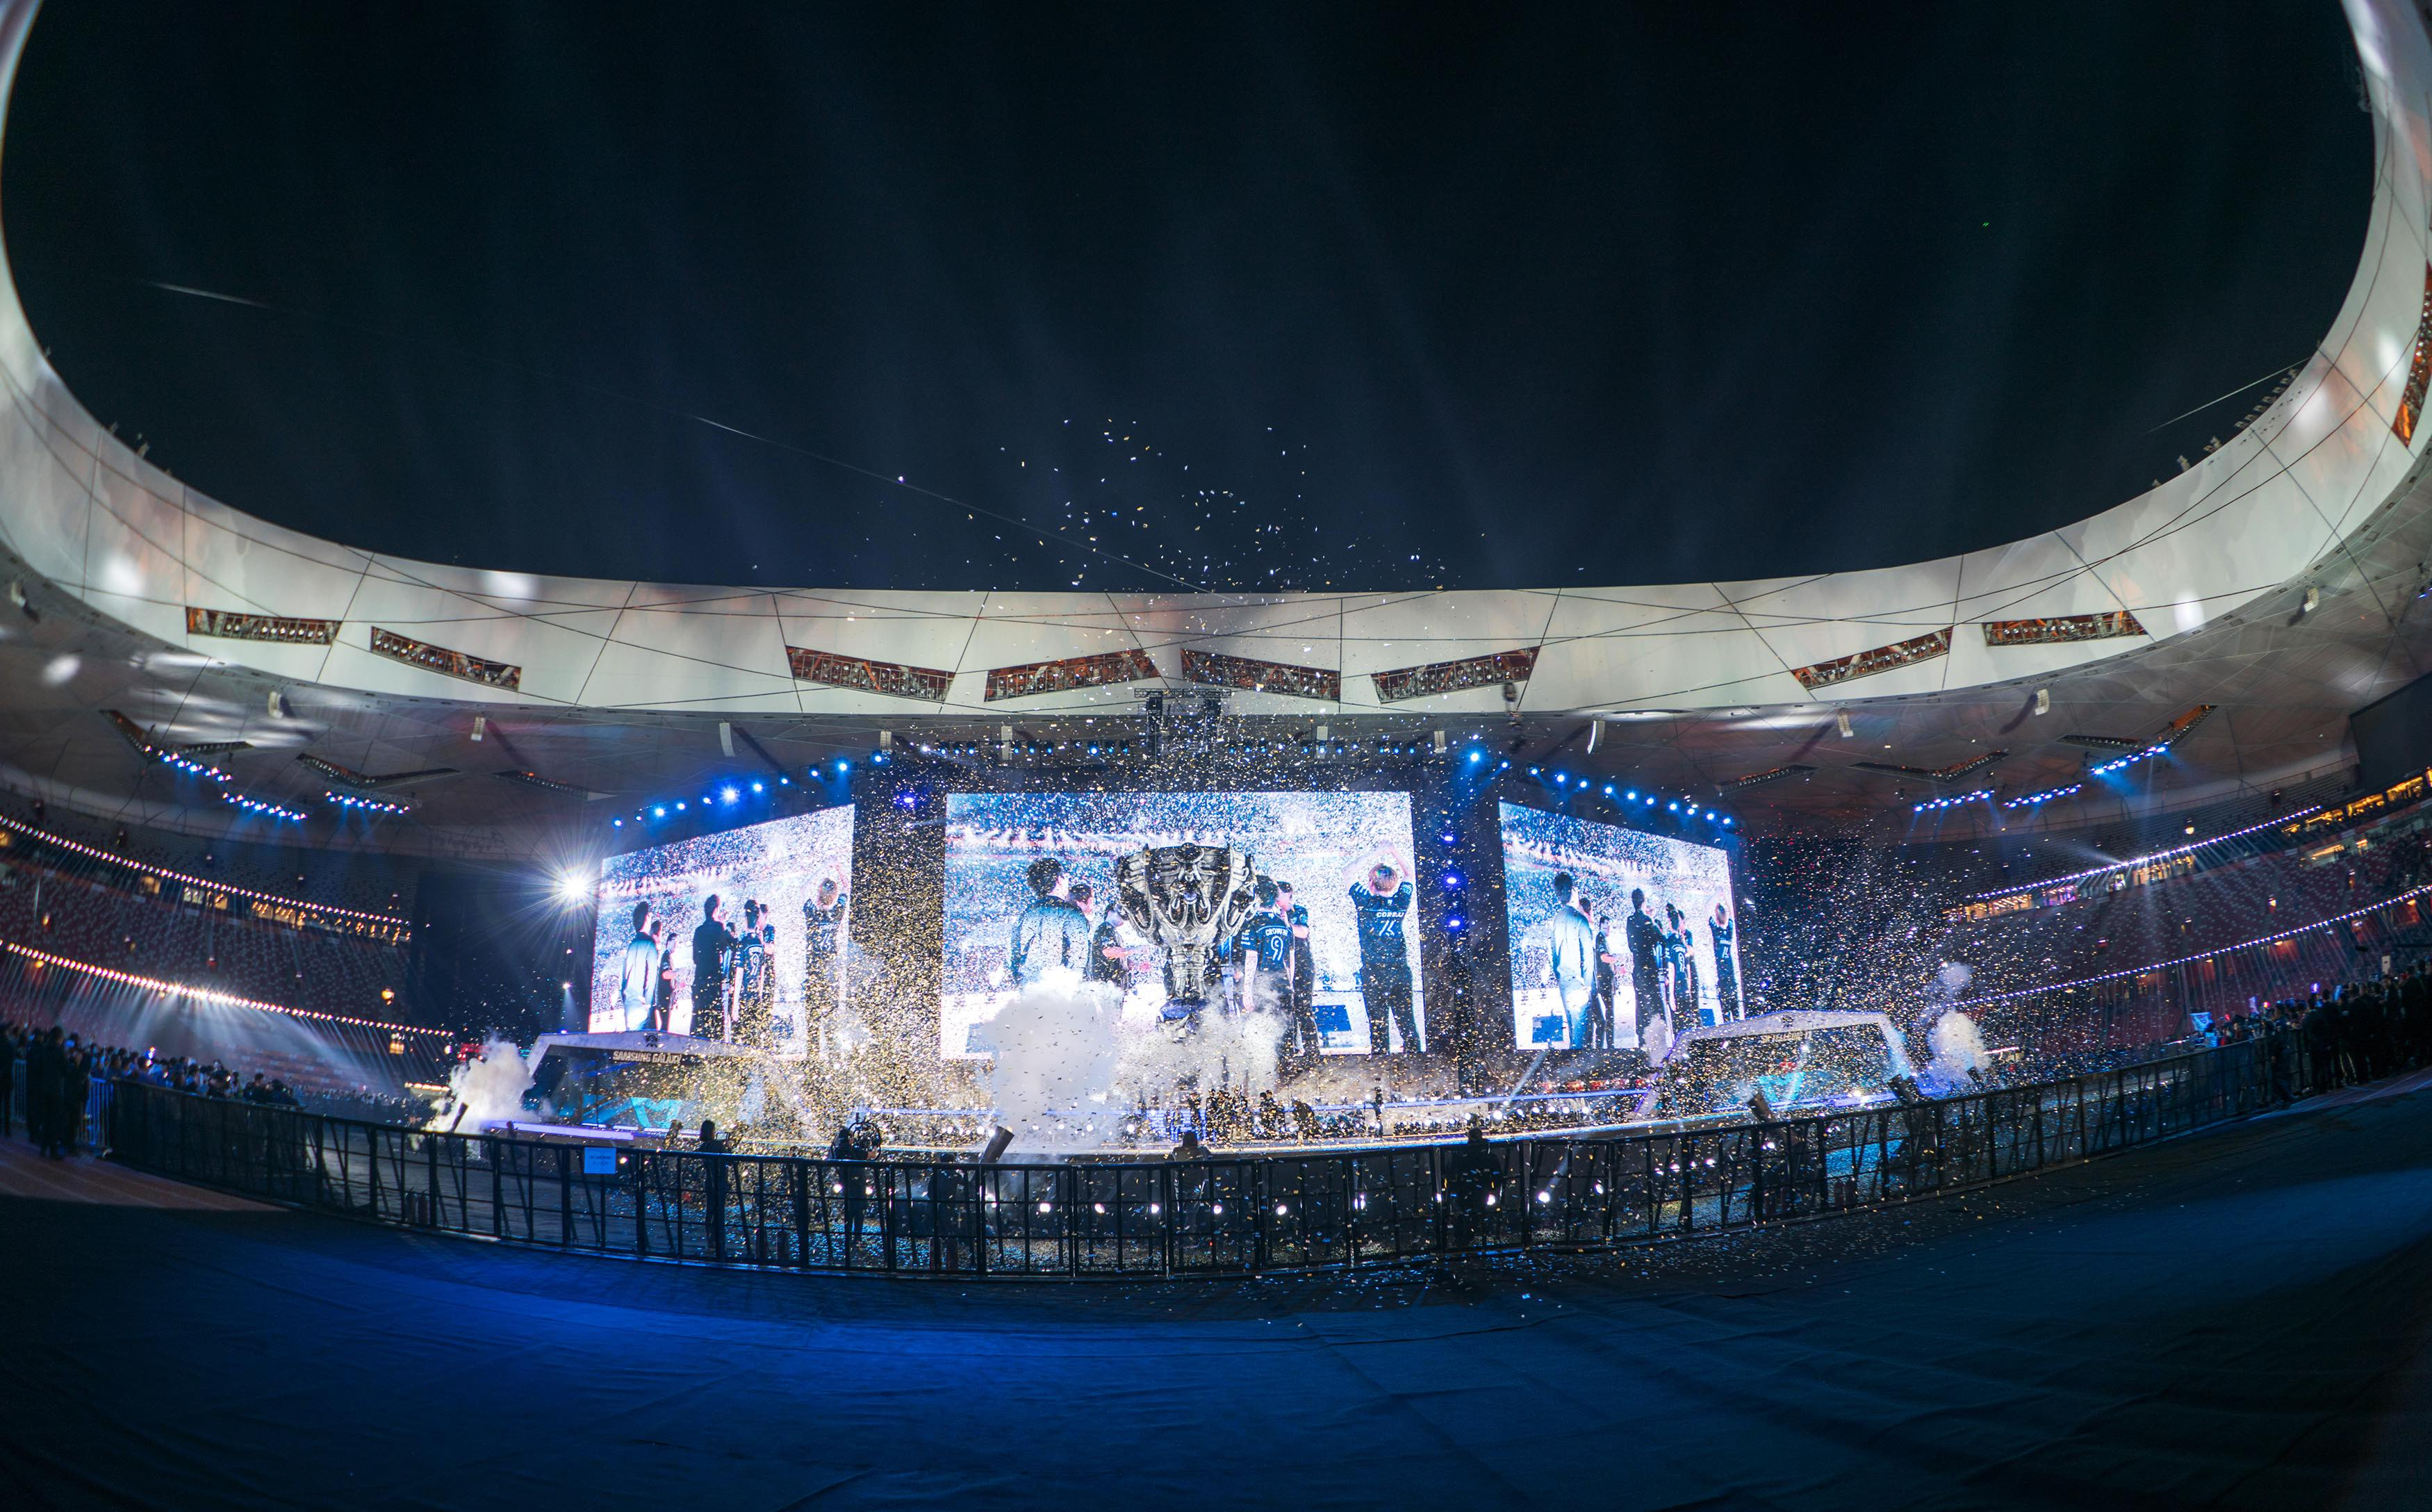 League of Legends World Championship returns to China in 2020